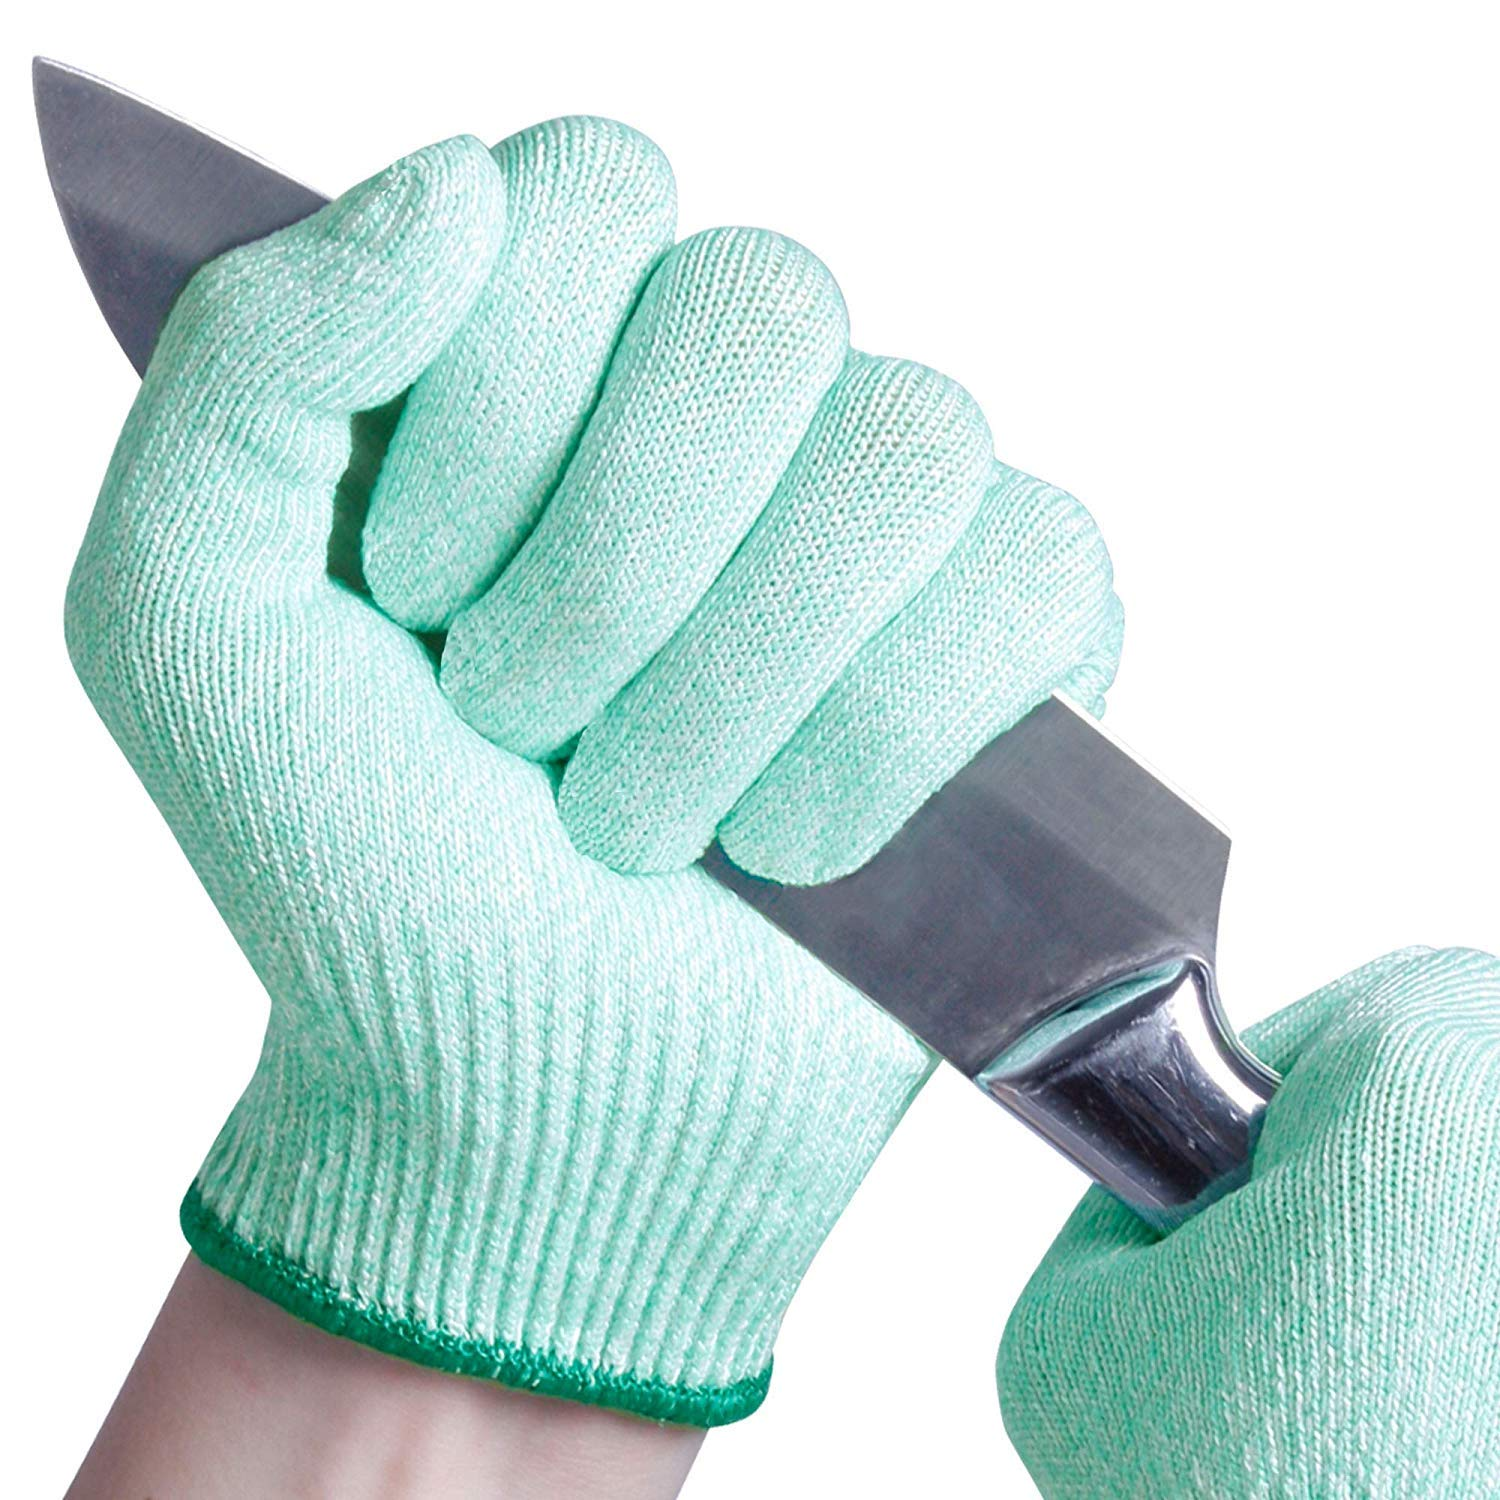 EVRIDWEAR Cut Resistant Gloves, Food Grade Level 5 Safety Protection  Kitchen Cuts Gloves For cutting, Chopping, Fish Fillet, Mandolin Slicing  and ...